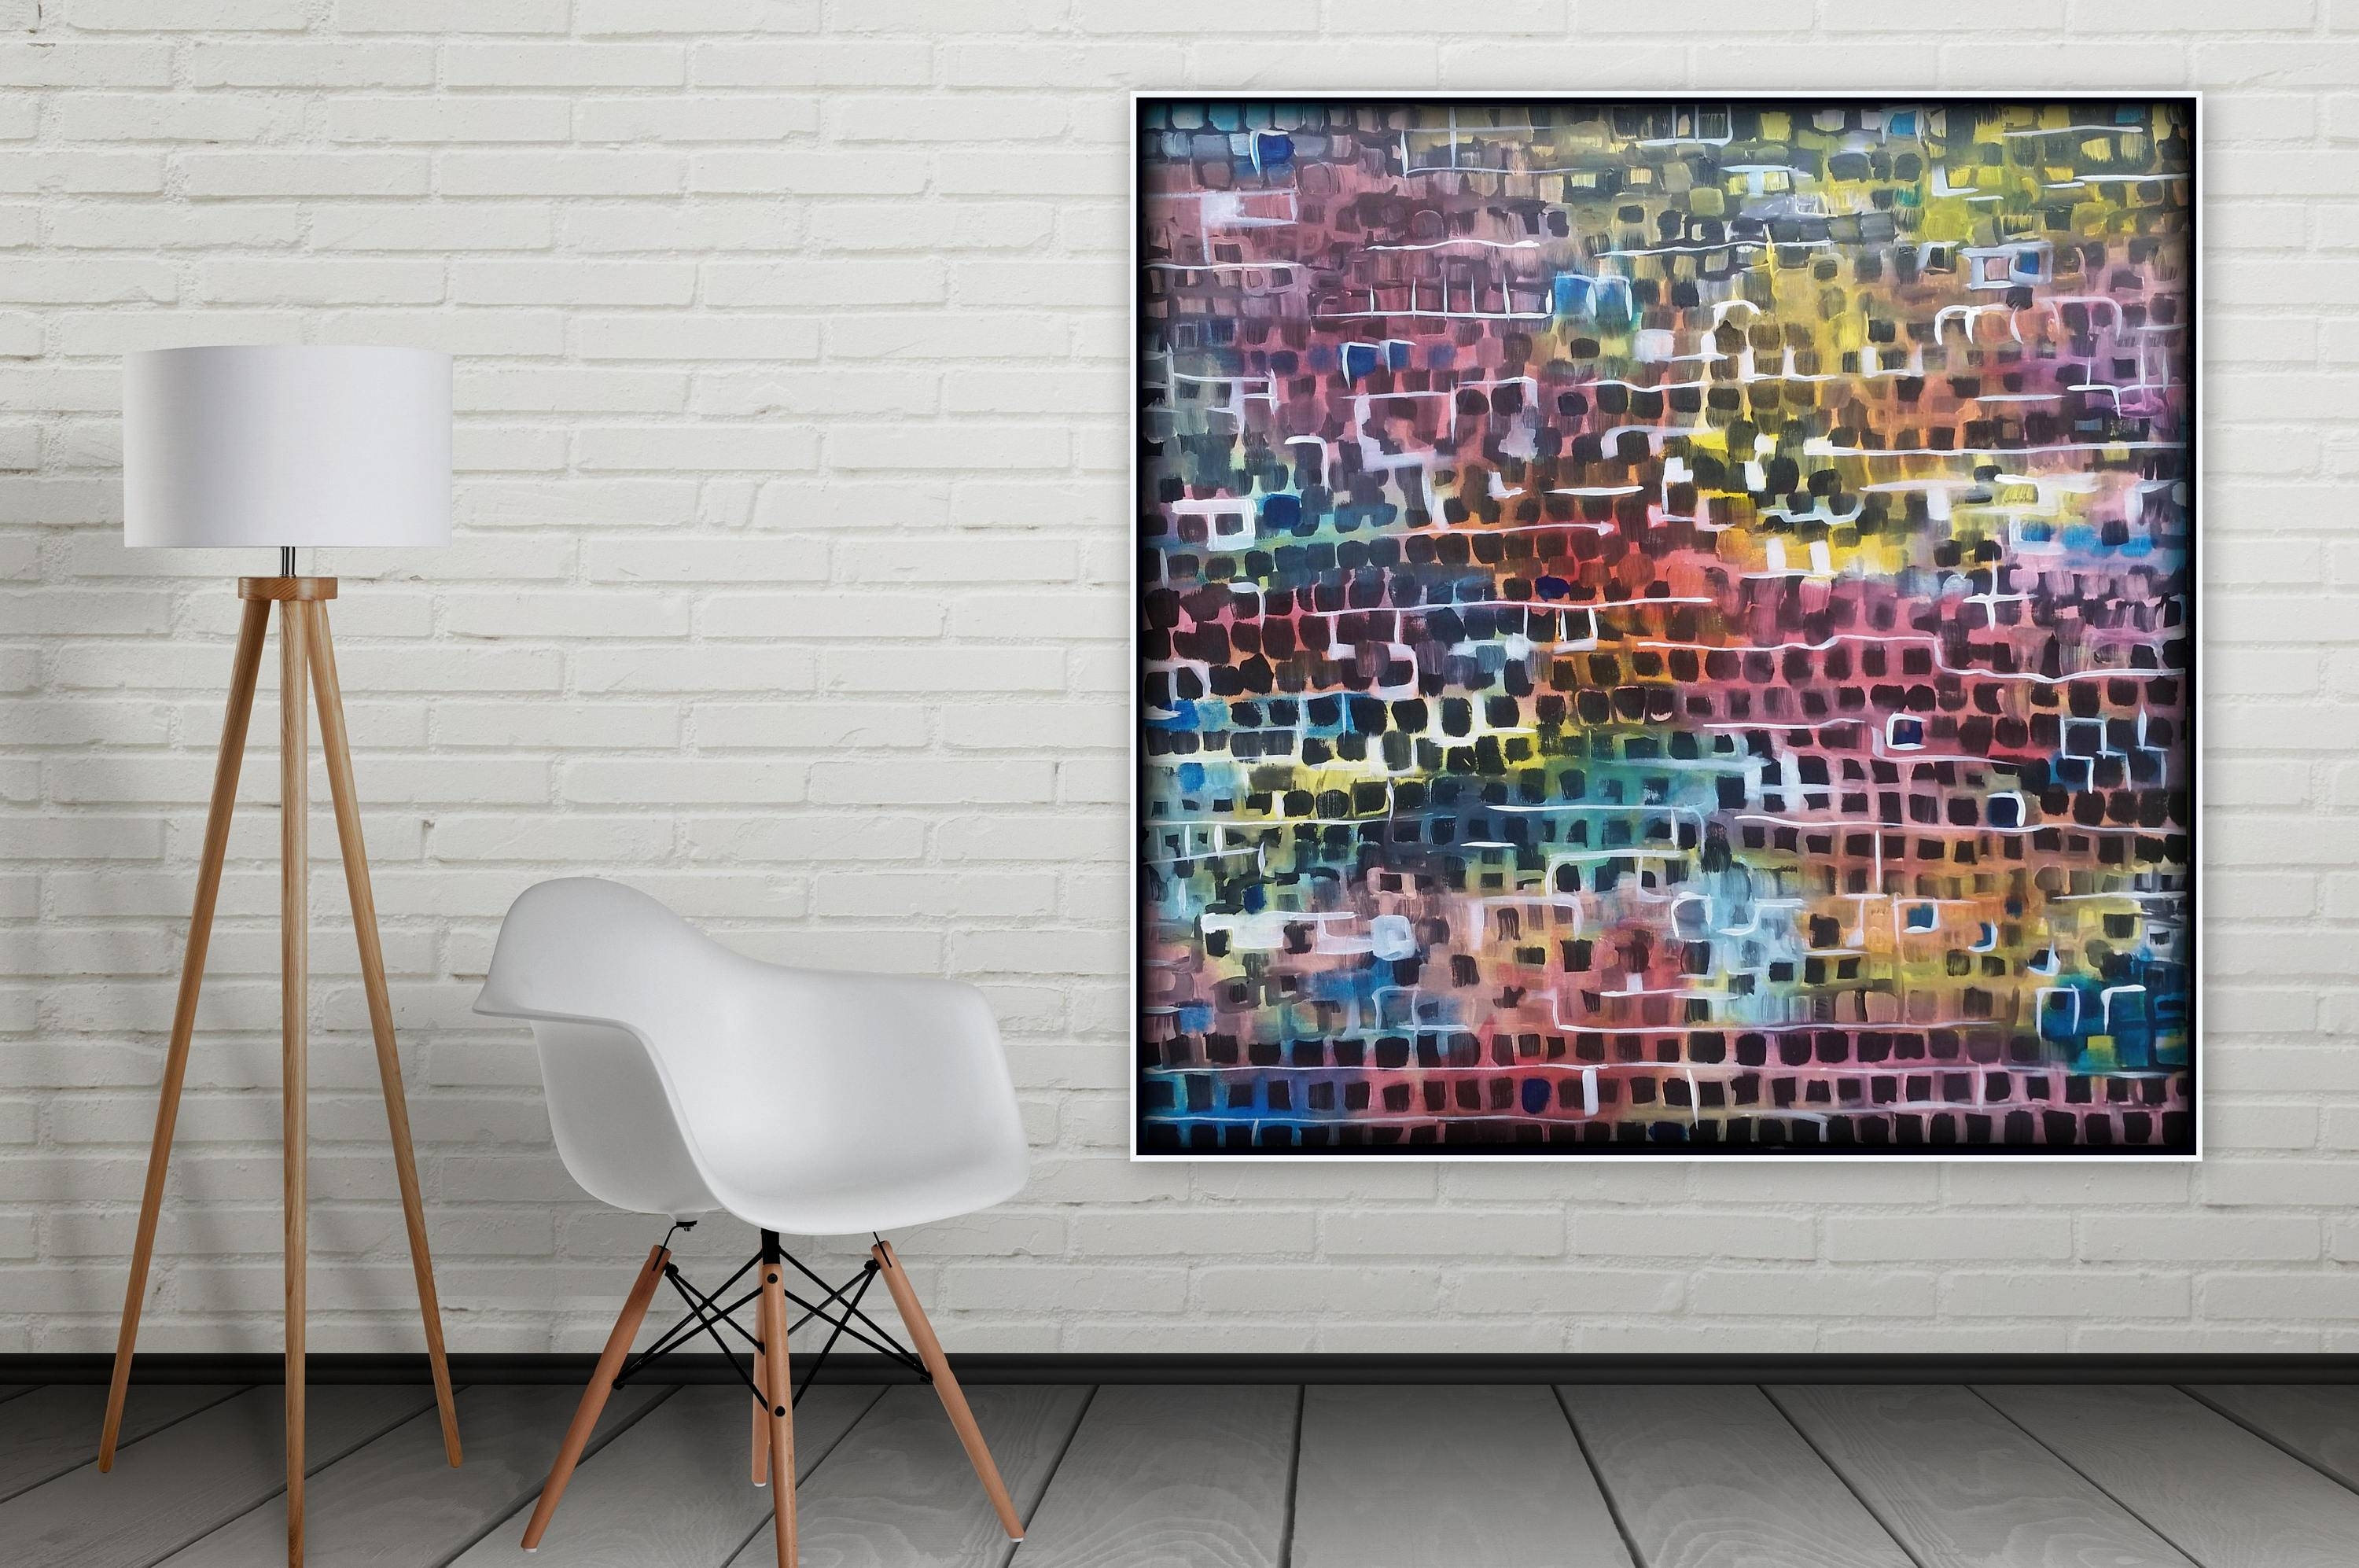 Xl 48 X 48 Original Abstract Painting Cubism, Contemporary Large In Current 48X48 Canvas Wall Art (View 20 of 20)